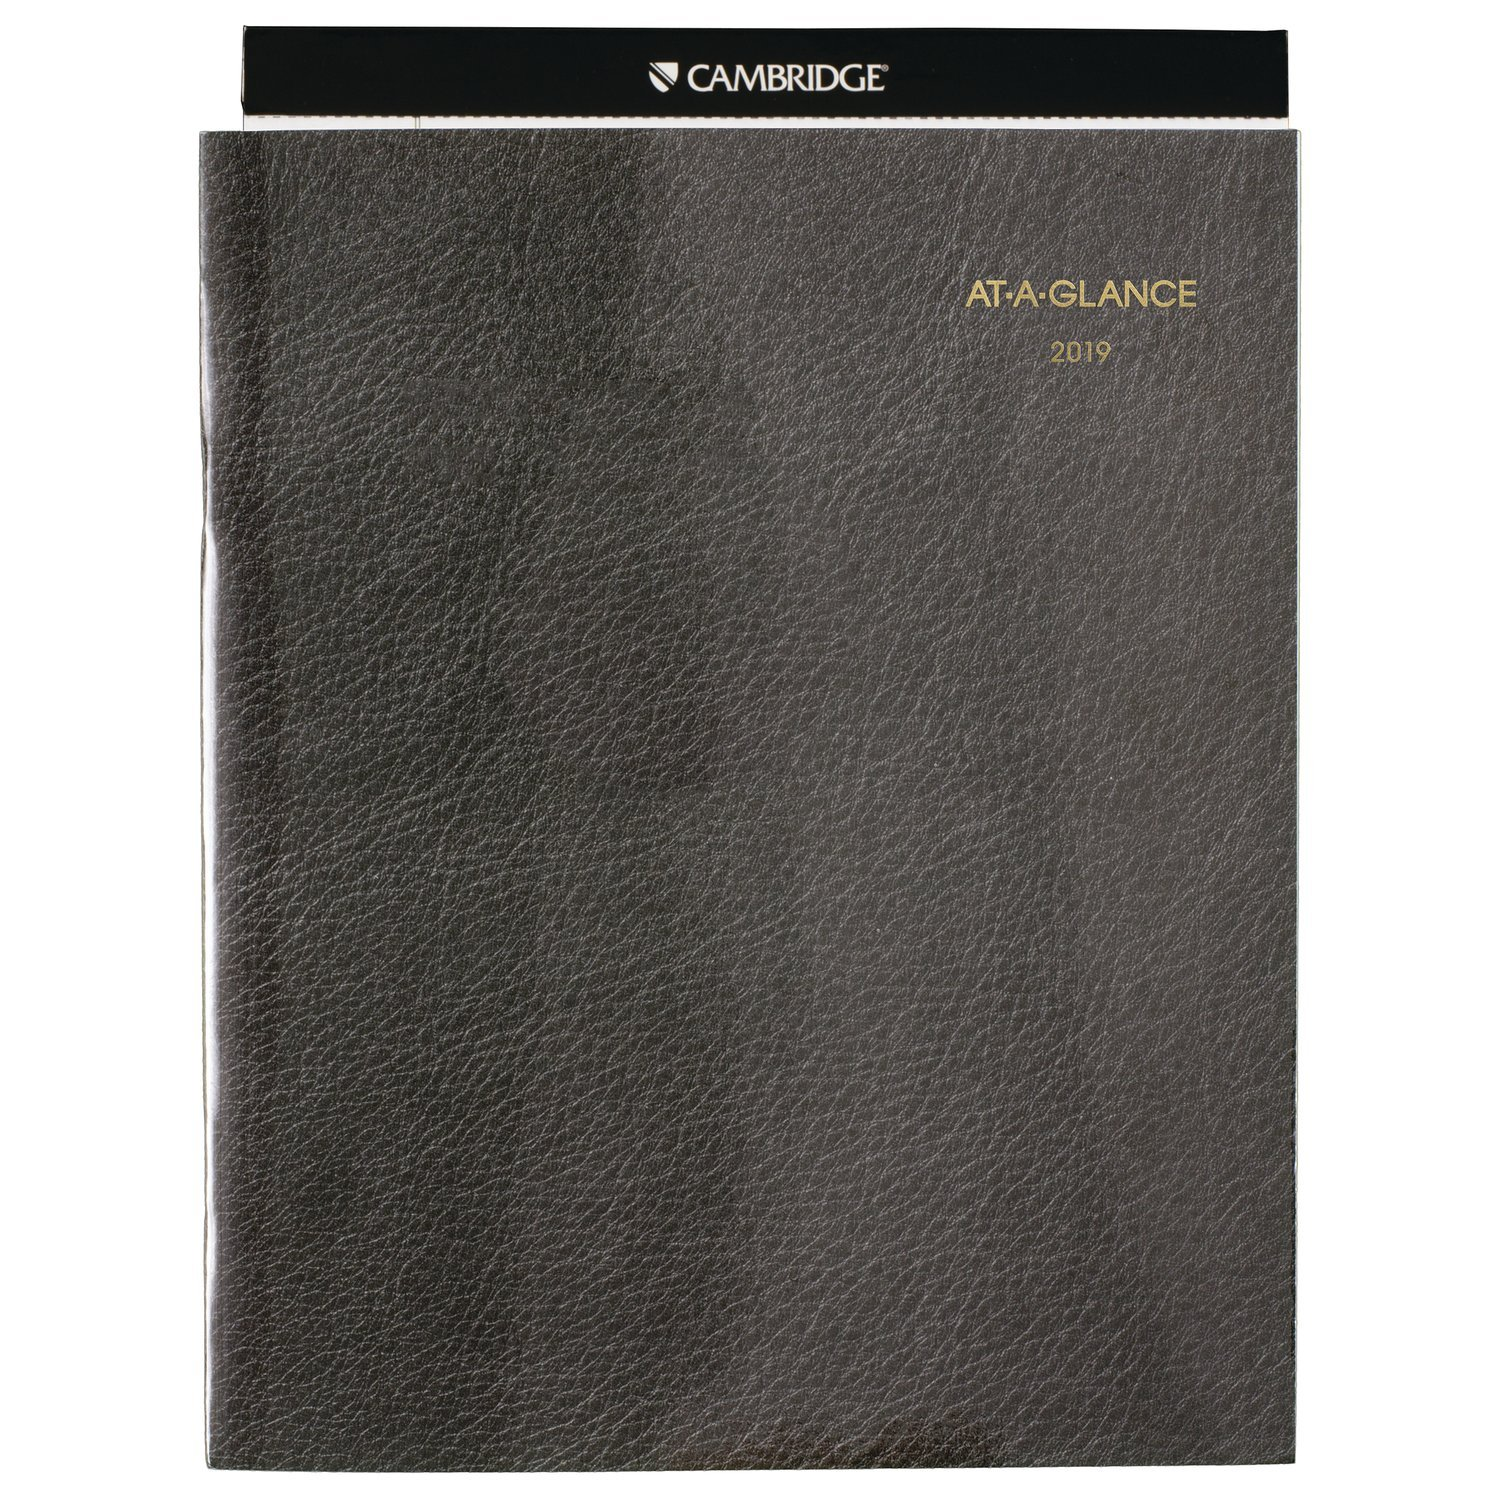 AT-A-GLANCE Monthly Planner Refill for Executive Monthly Padfolio, January 2019 - January 2020, 9'' x 11'' (7090910)